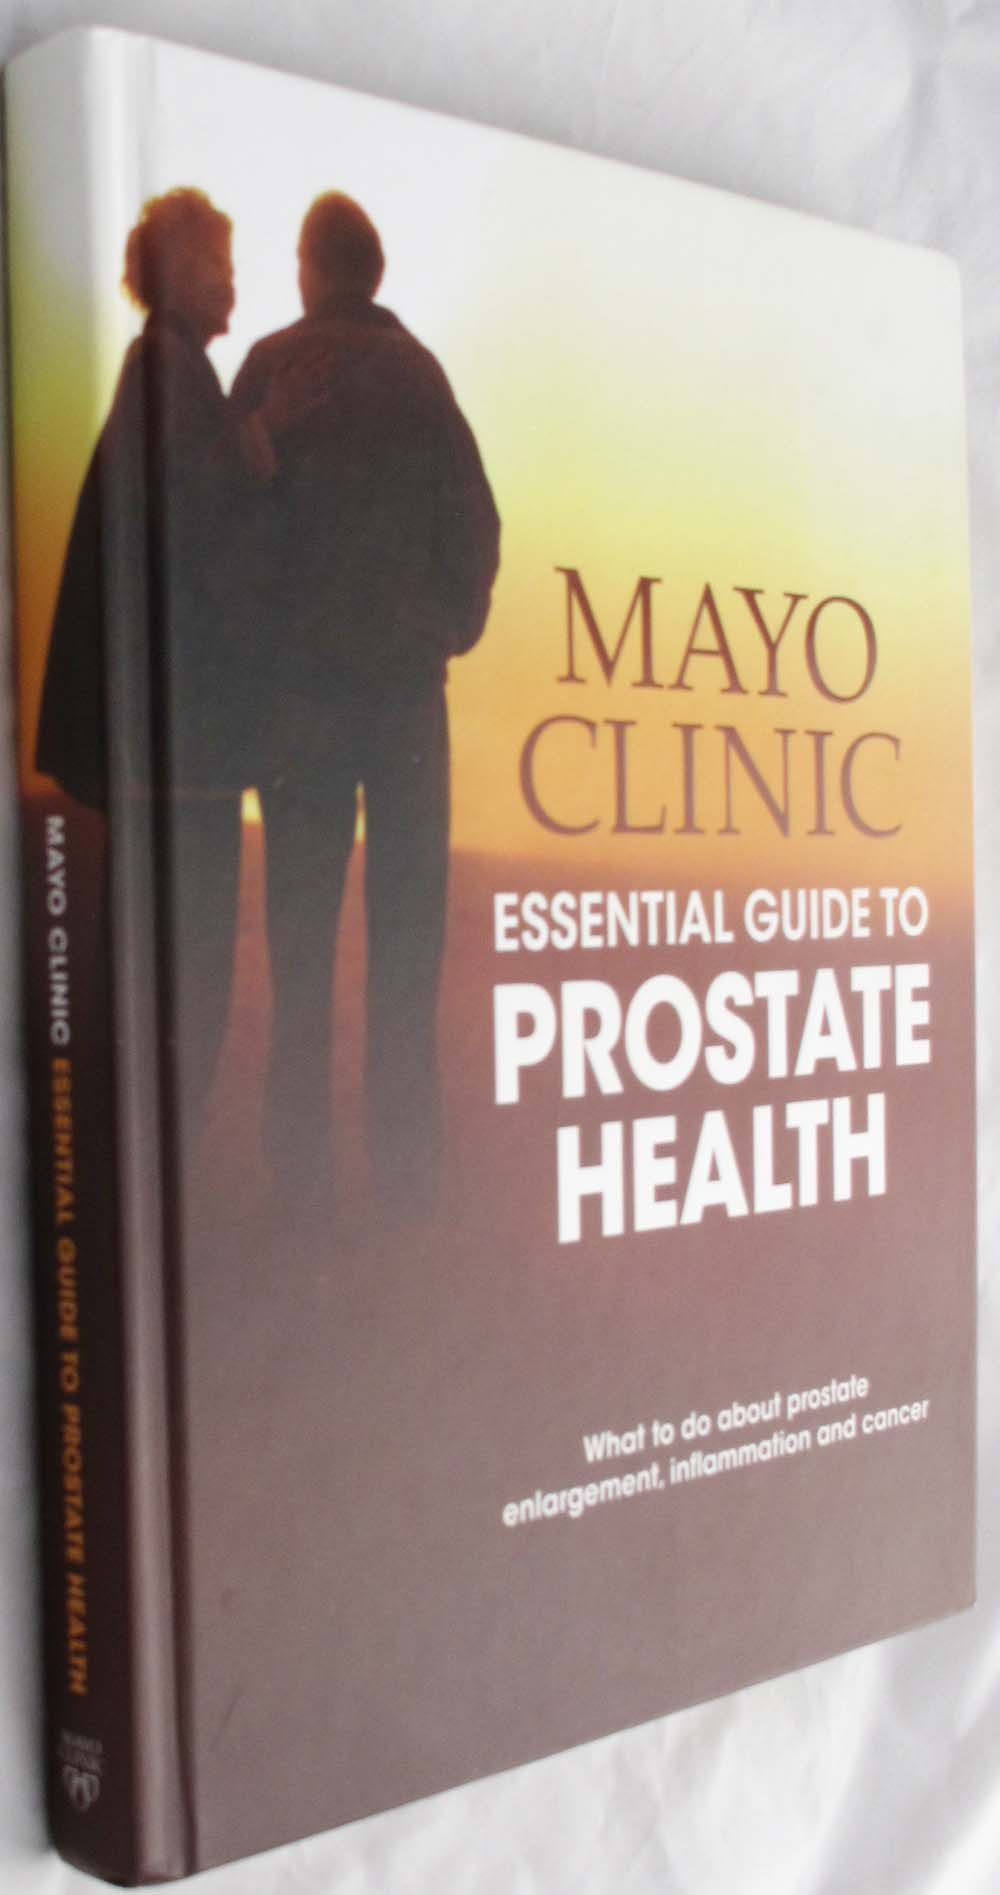 Mayo Clinic Essential Guide to Prostate Health (First Edition): M.D.,  Medical Editor-in Chief Lance A. Mynderse: Amazon.com: Books